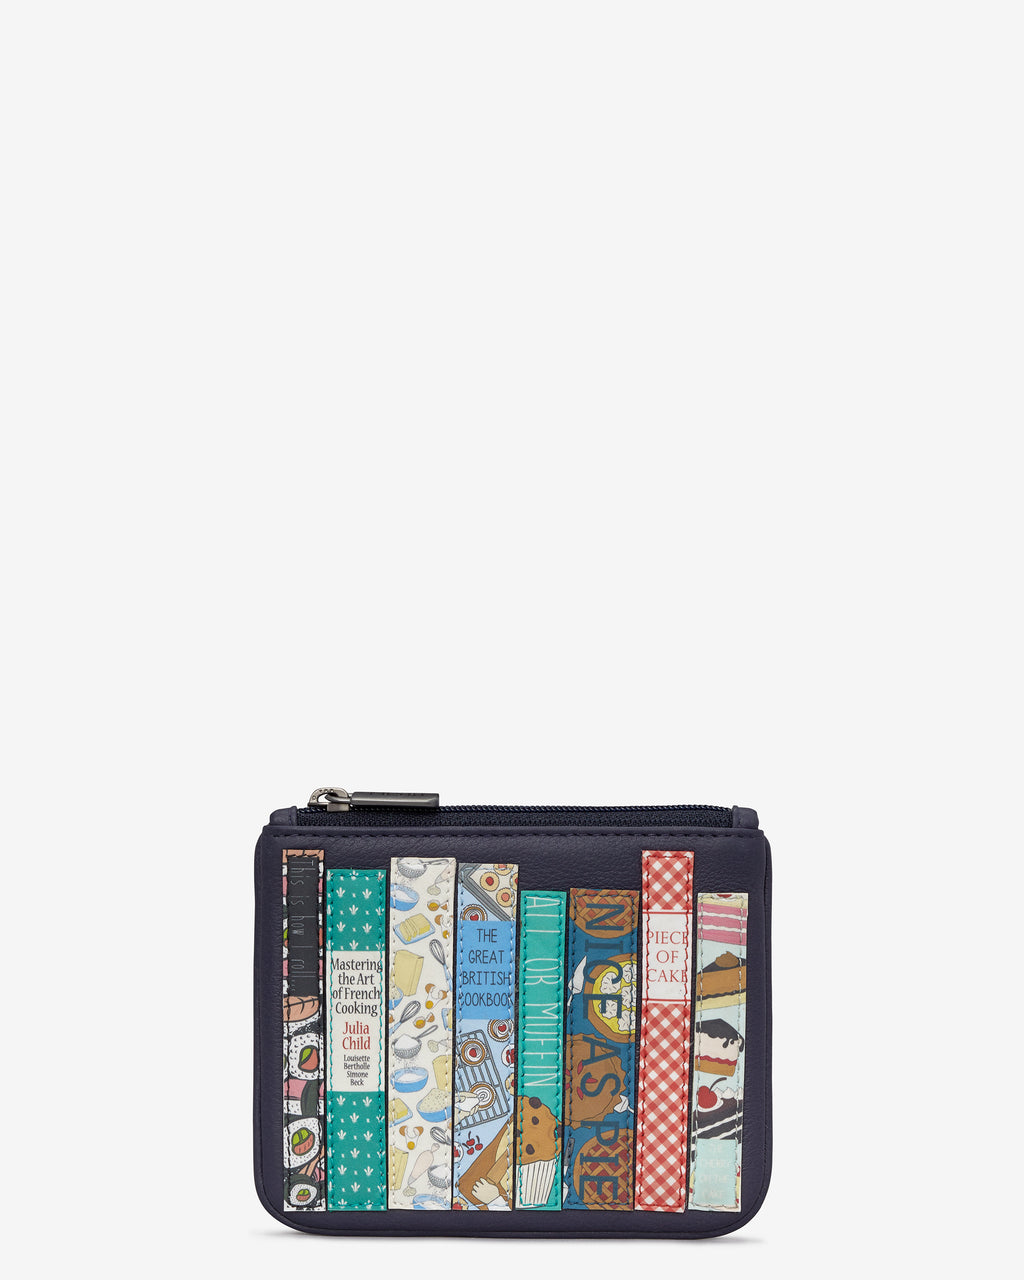 Cook Bookworm Library Zip Top Leather Purse